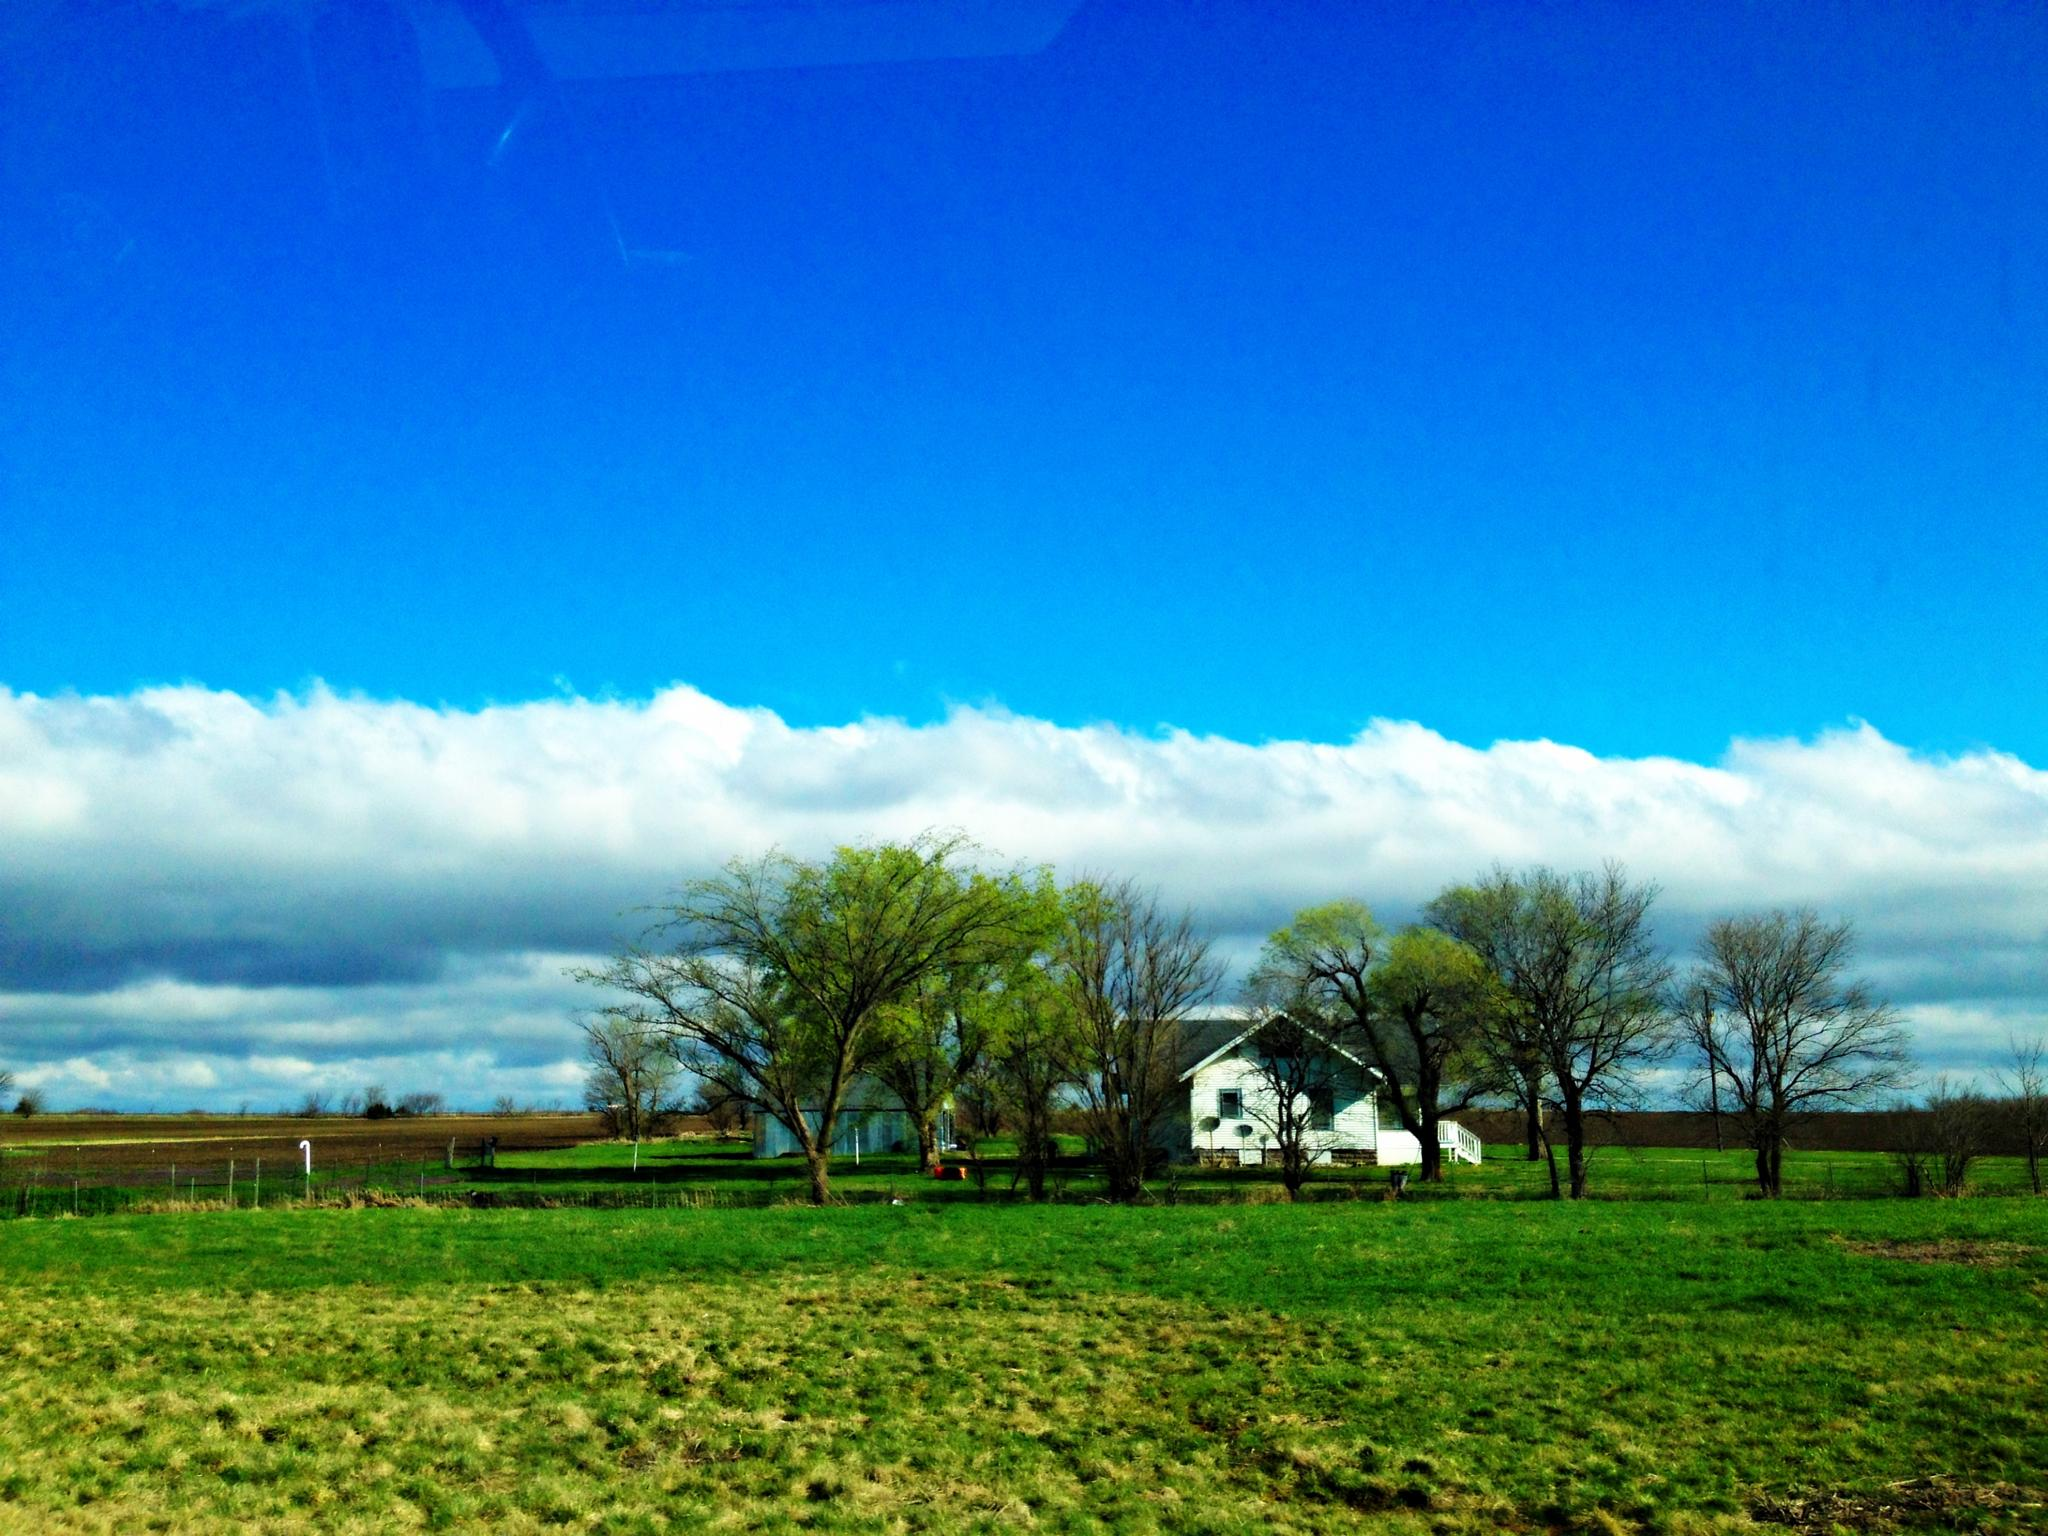 country driving  #lowclouds#clearsky #countryLiving by jancarty